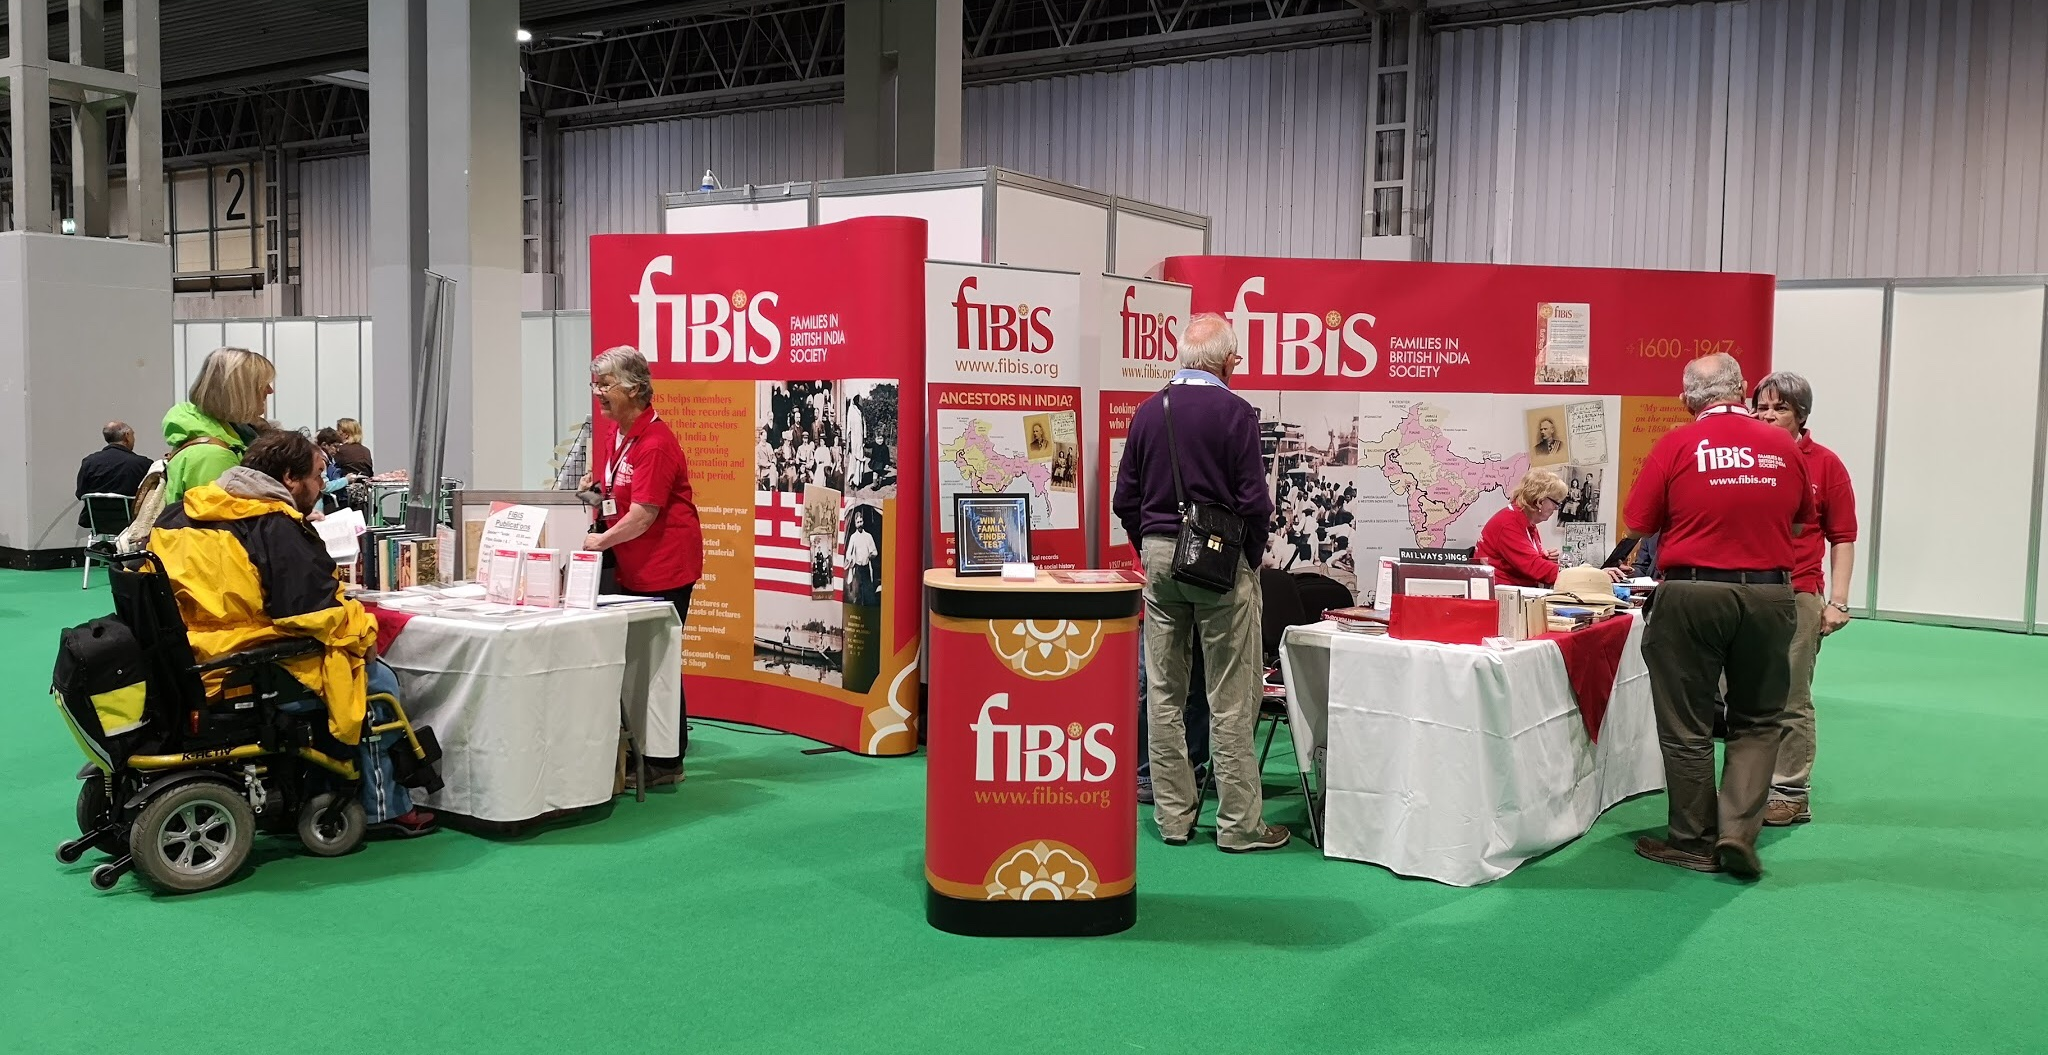 The FIBIS stand